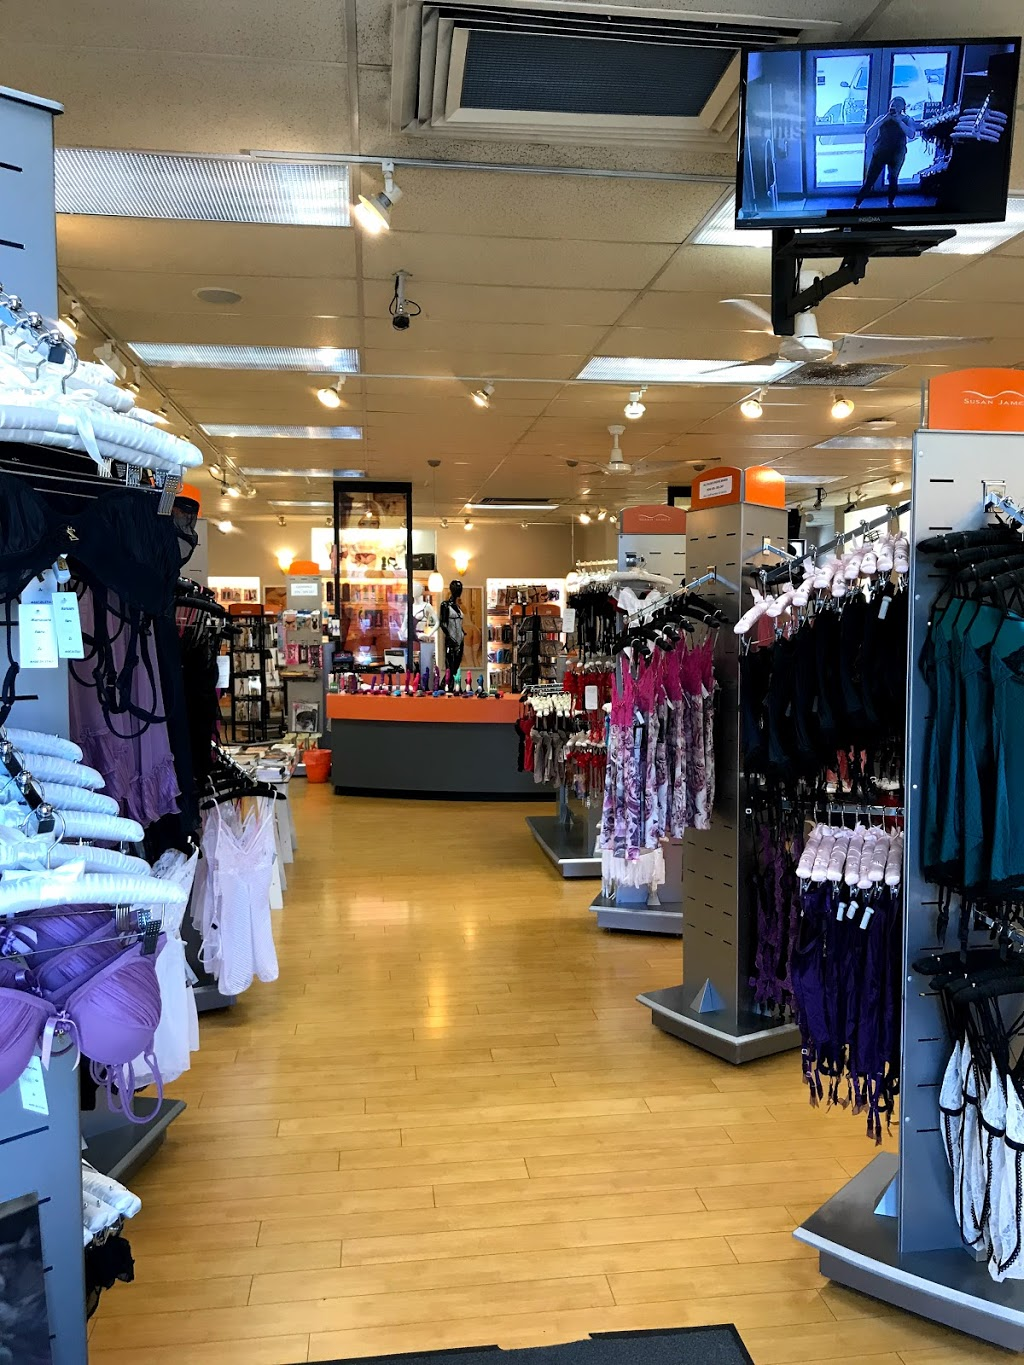 Susan James Store | clothing store | 942 Hillside Ave, Victoria, BC V8T 2A1, Canada | 2503842955 OR +1 250-384-2955